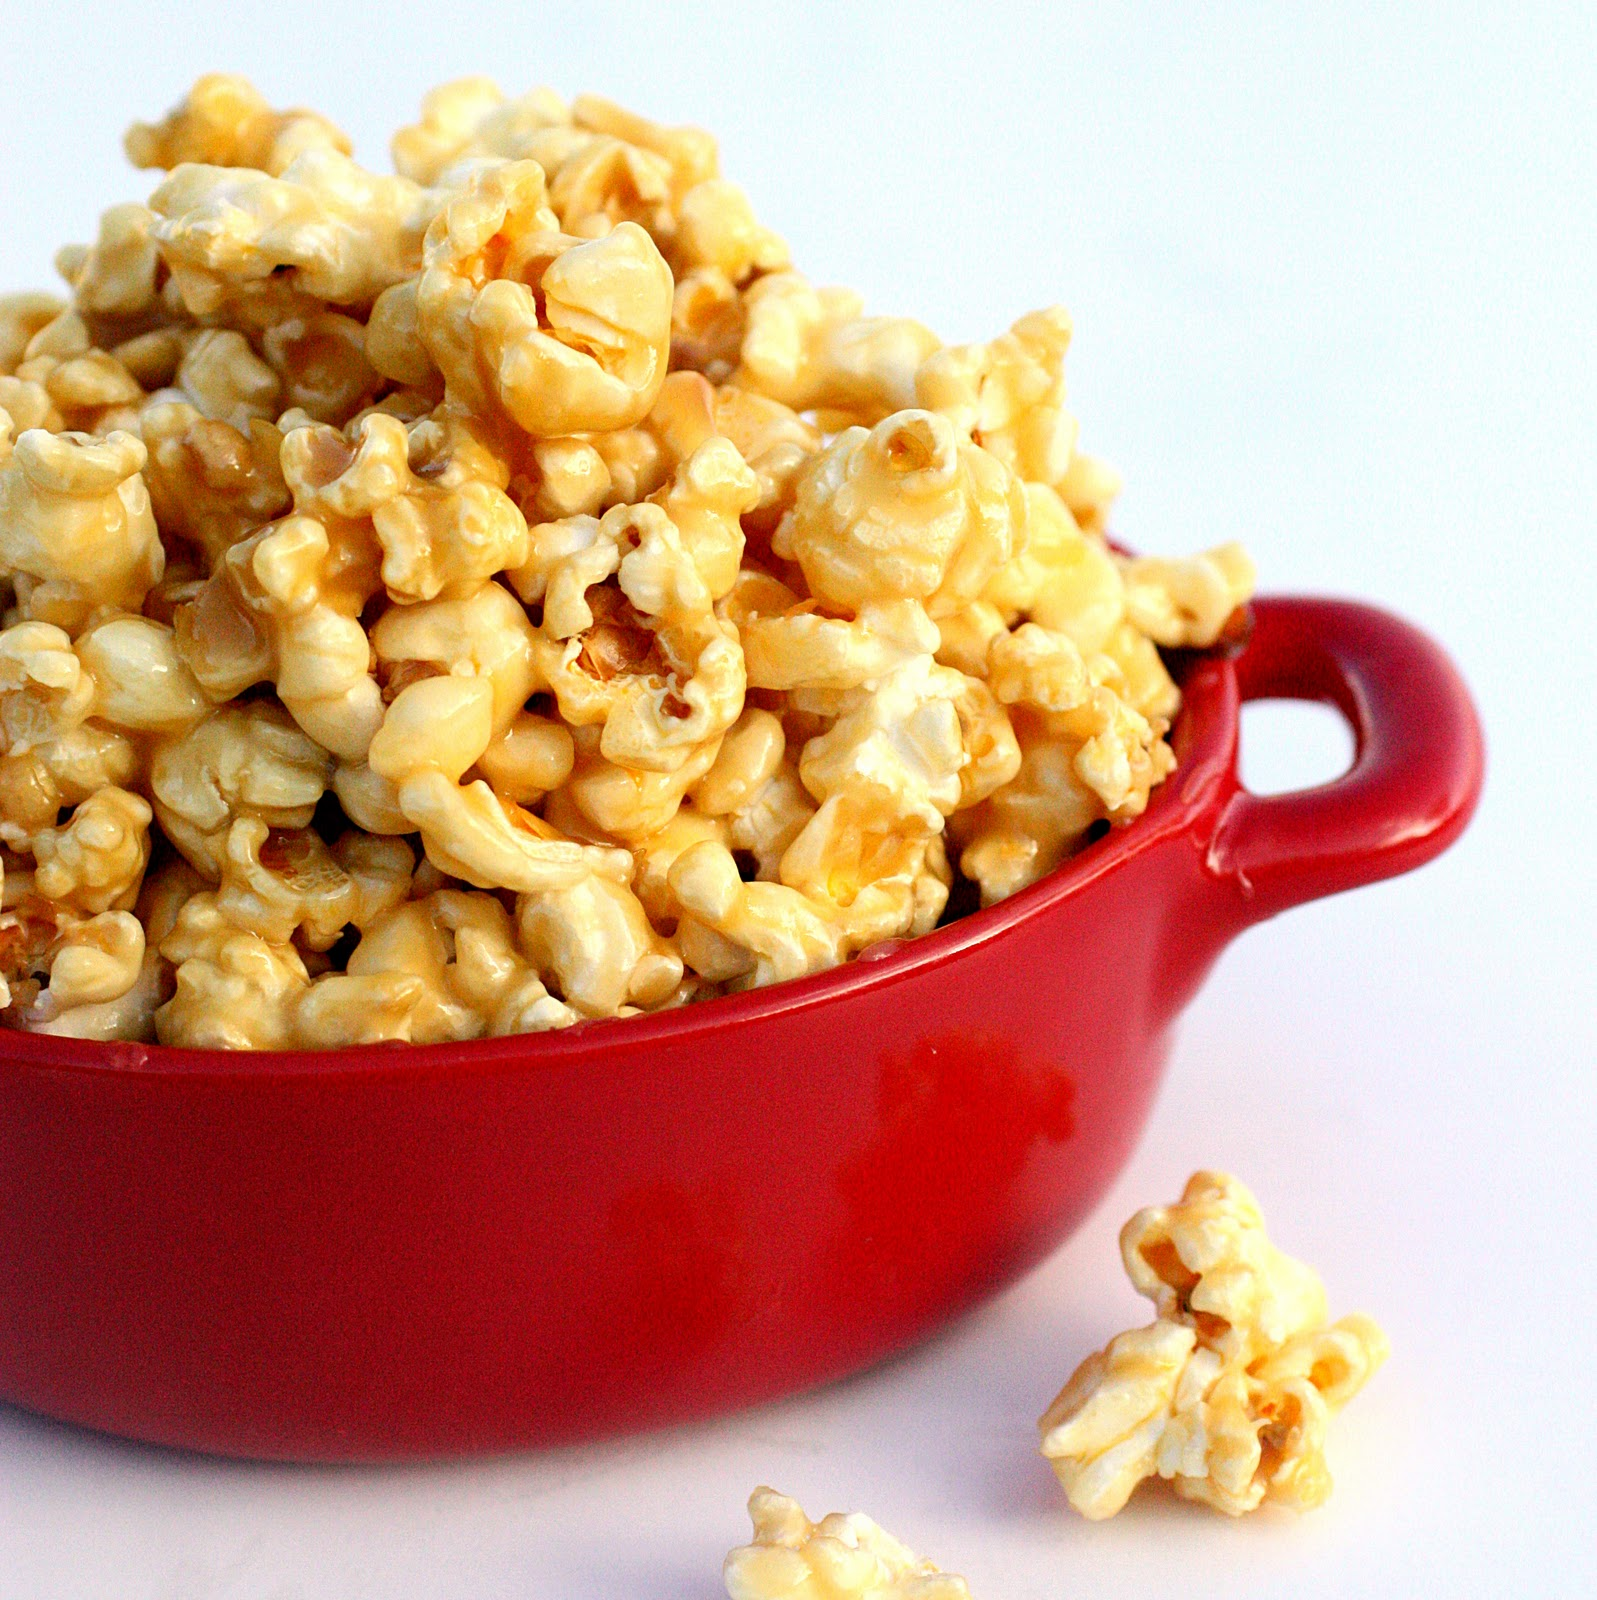 Tiffany's Soft Caramel Popcorn - The Girl Who Ate Everything